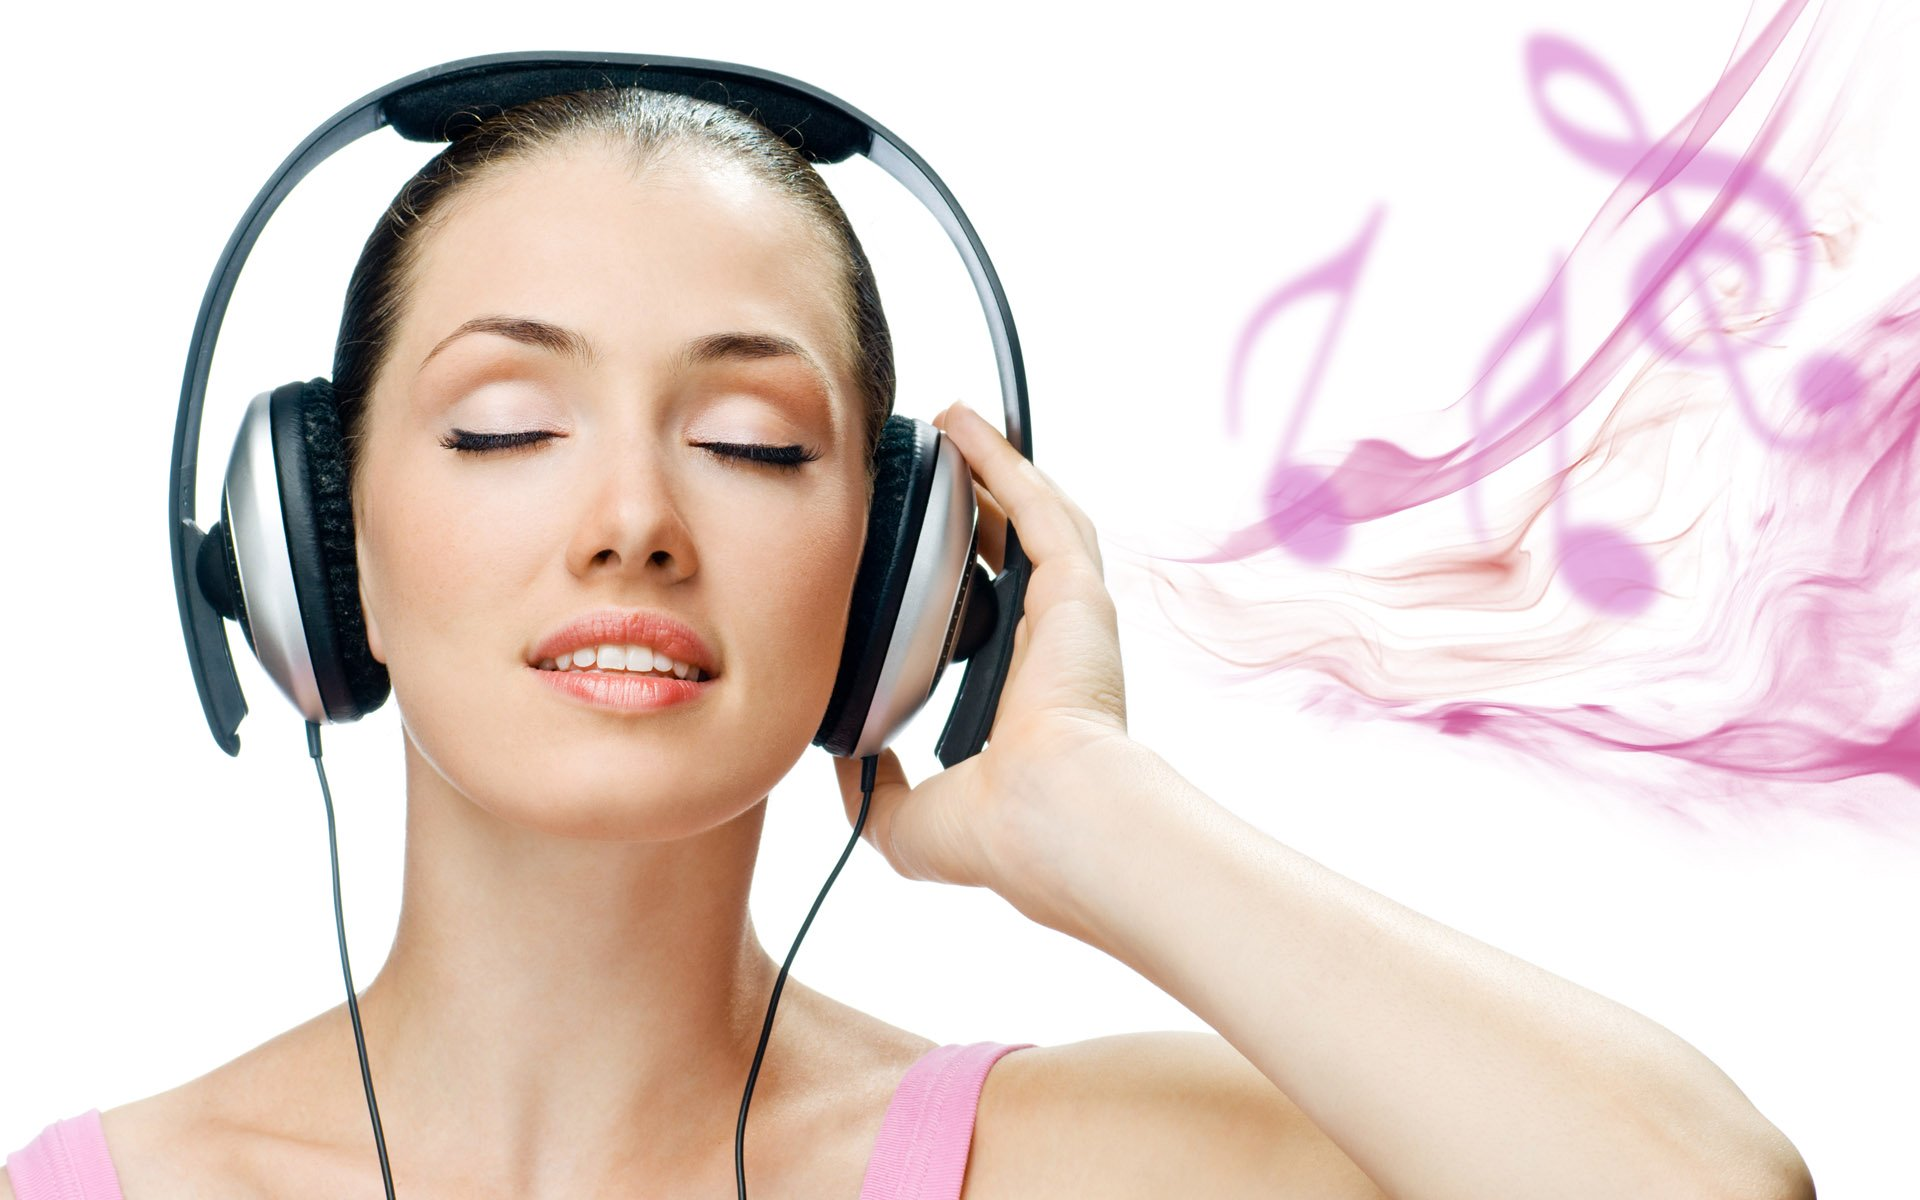 Girl Listening Music Wallpaper